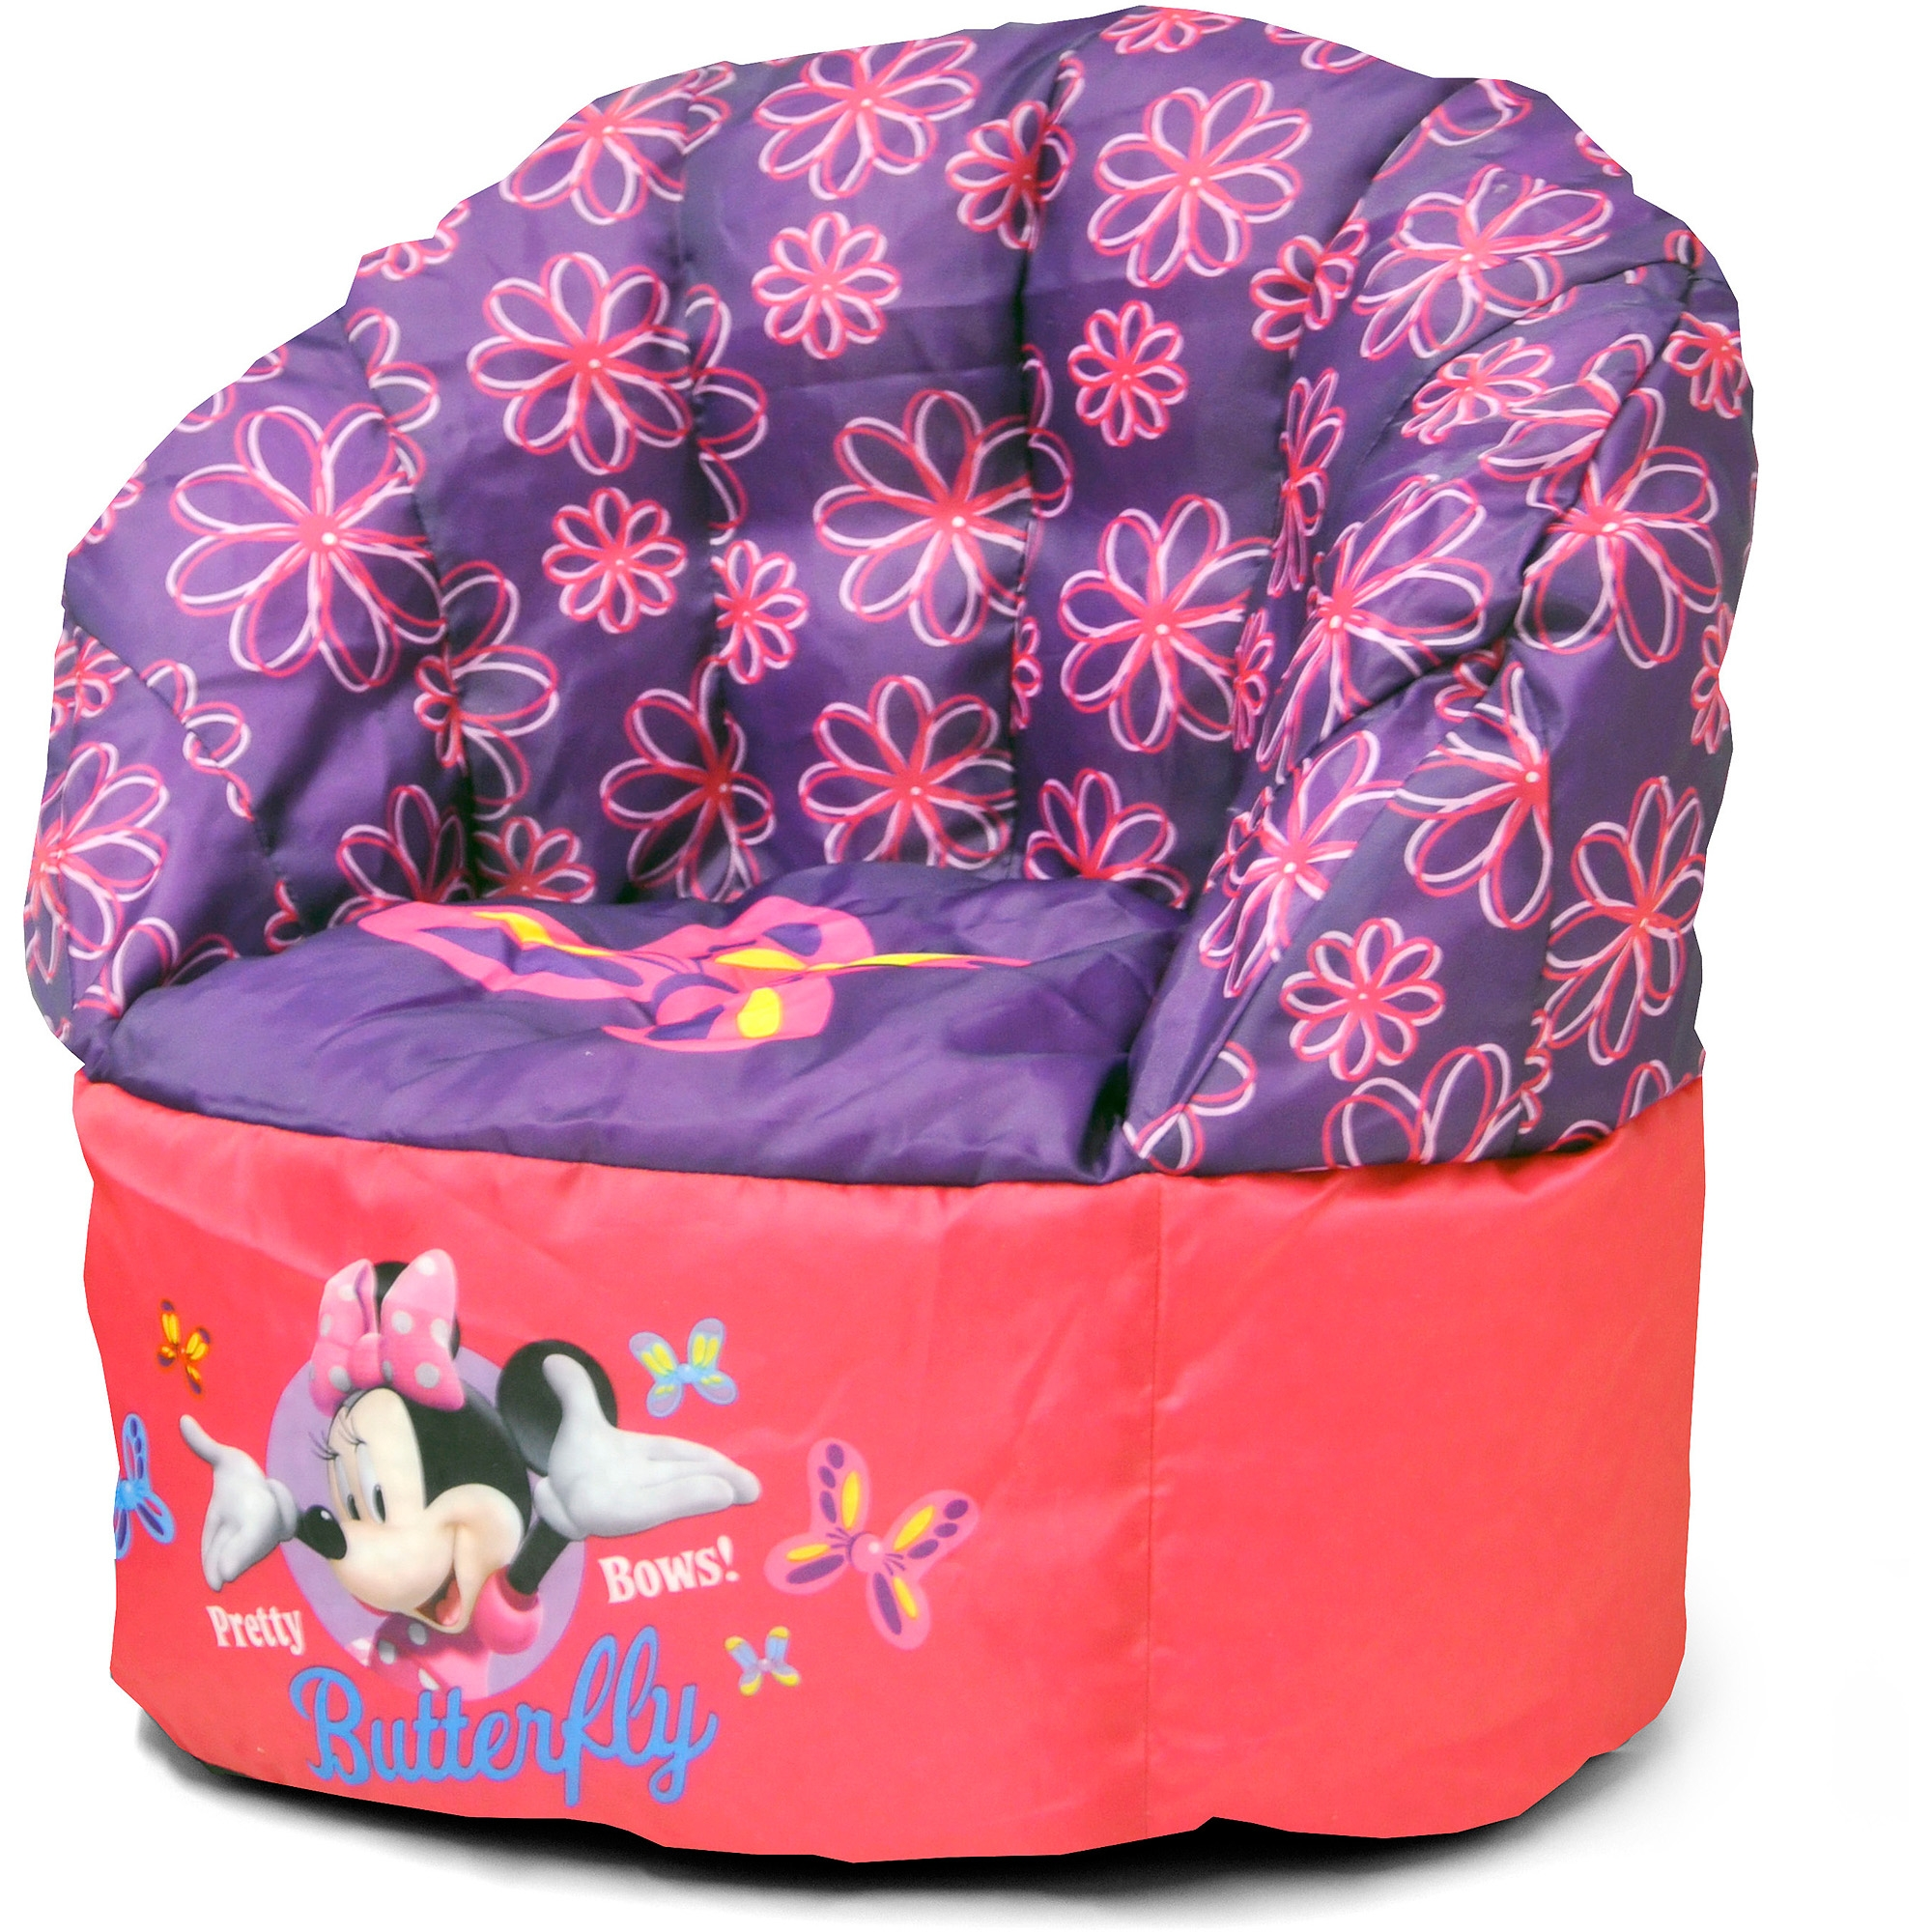 Disney Minnie Mouse Sofa Chair Walmart In Disney Sofa Chairs (Image 5 of 15)